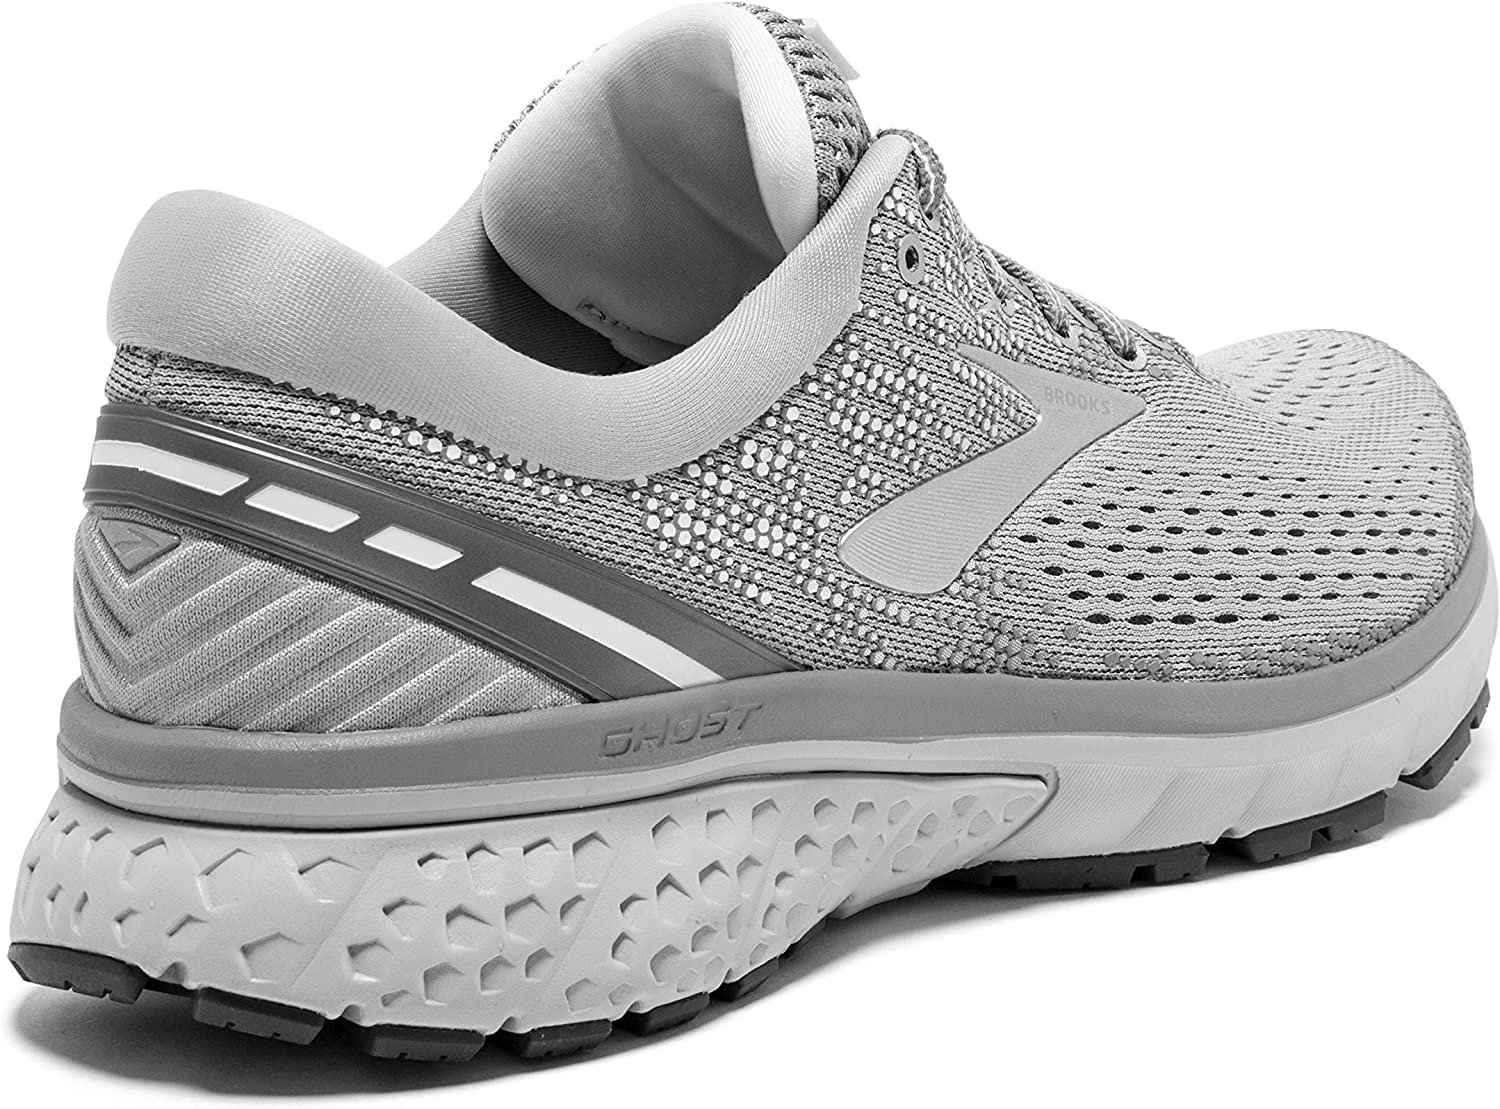 Brooks Australia Women's Ghost 11 Road Running Shoes, Grey/Silver/White Grey/silver/white